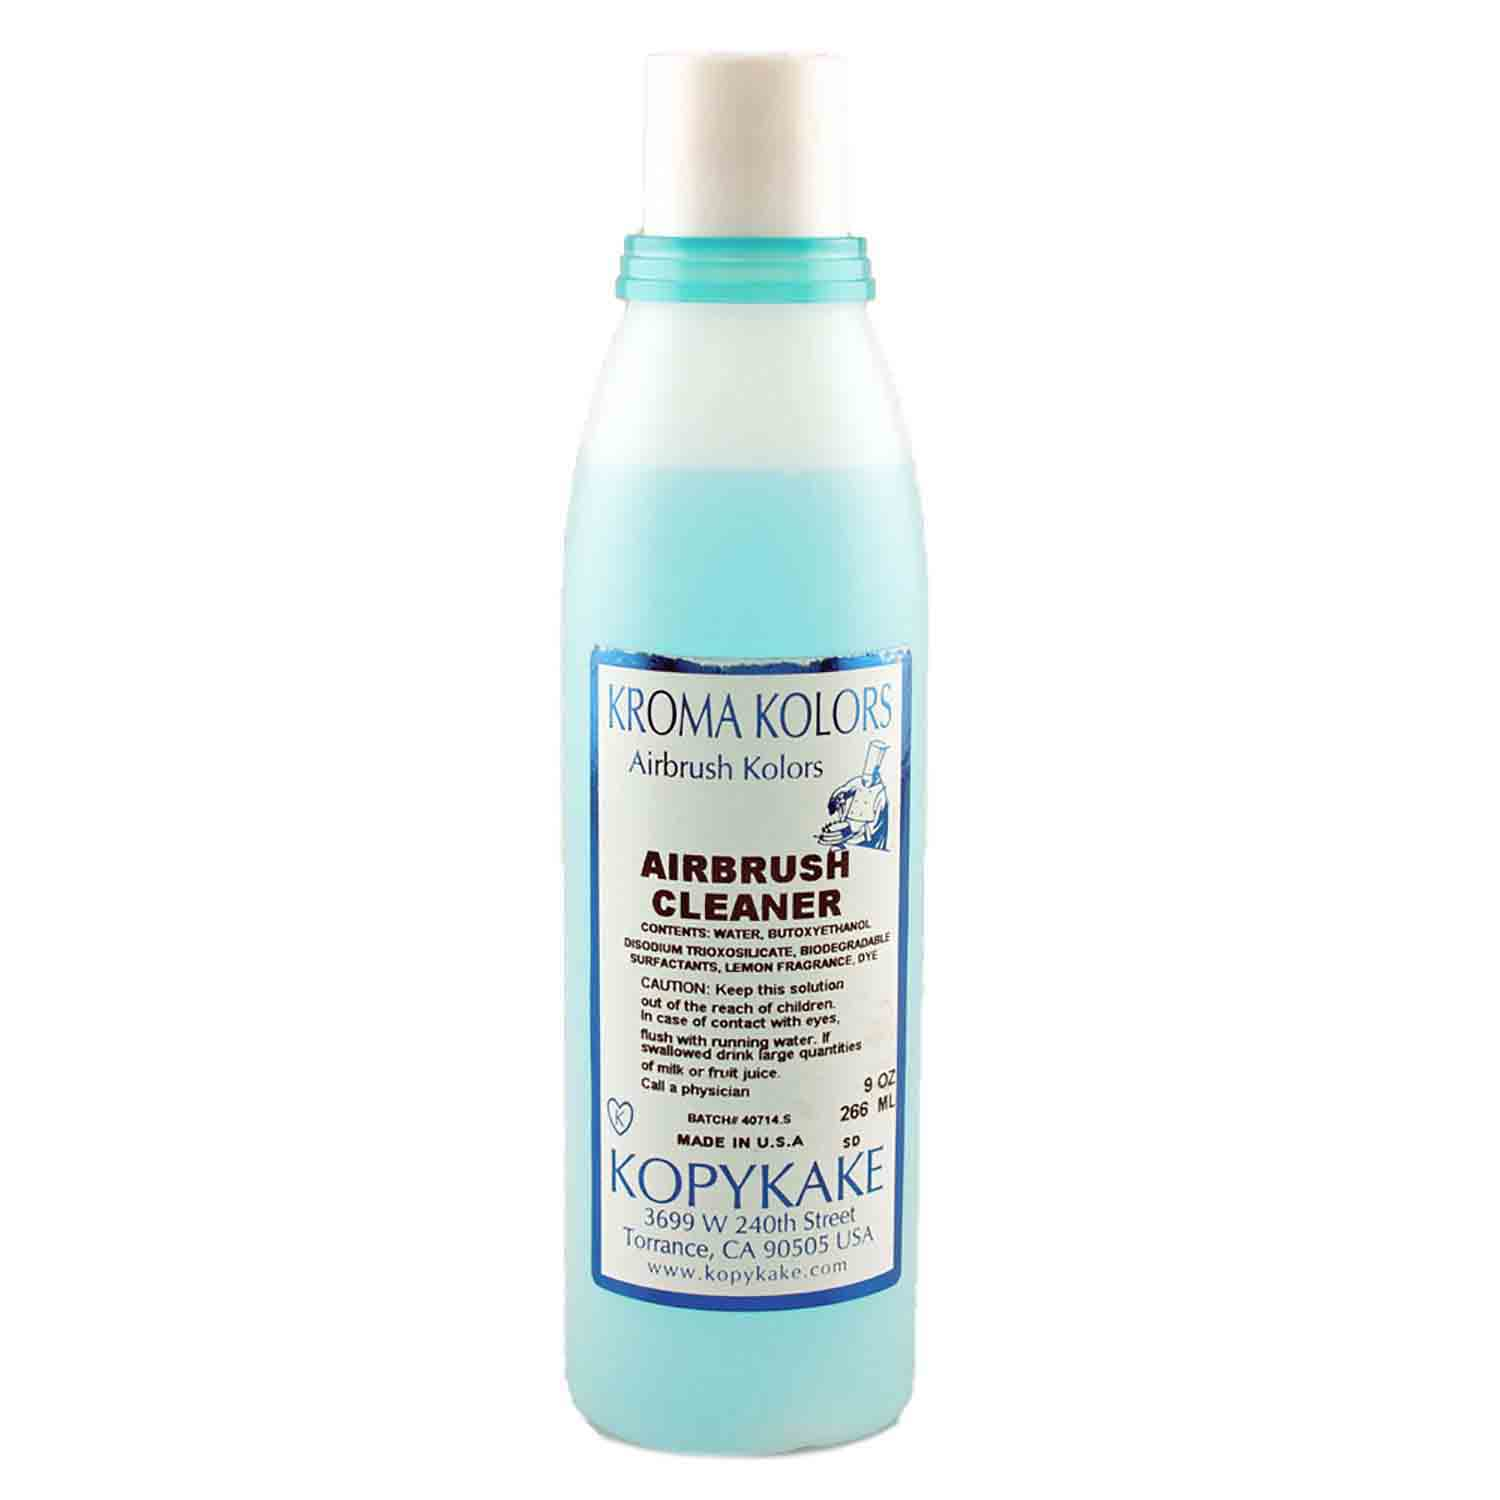 Kopykake Air Brush Cleaner